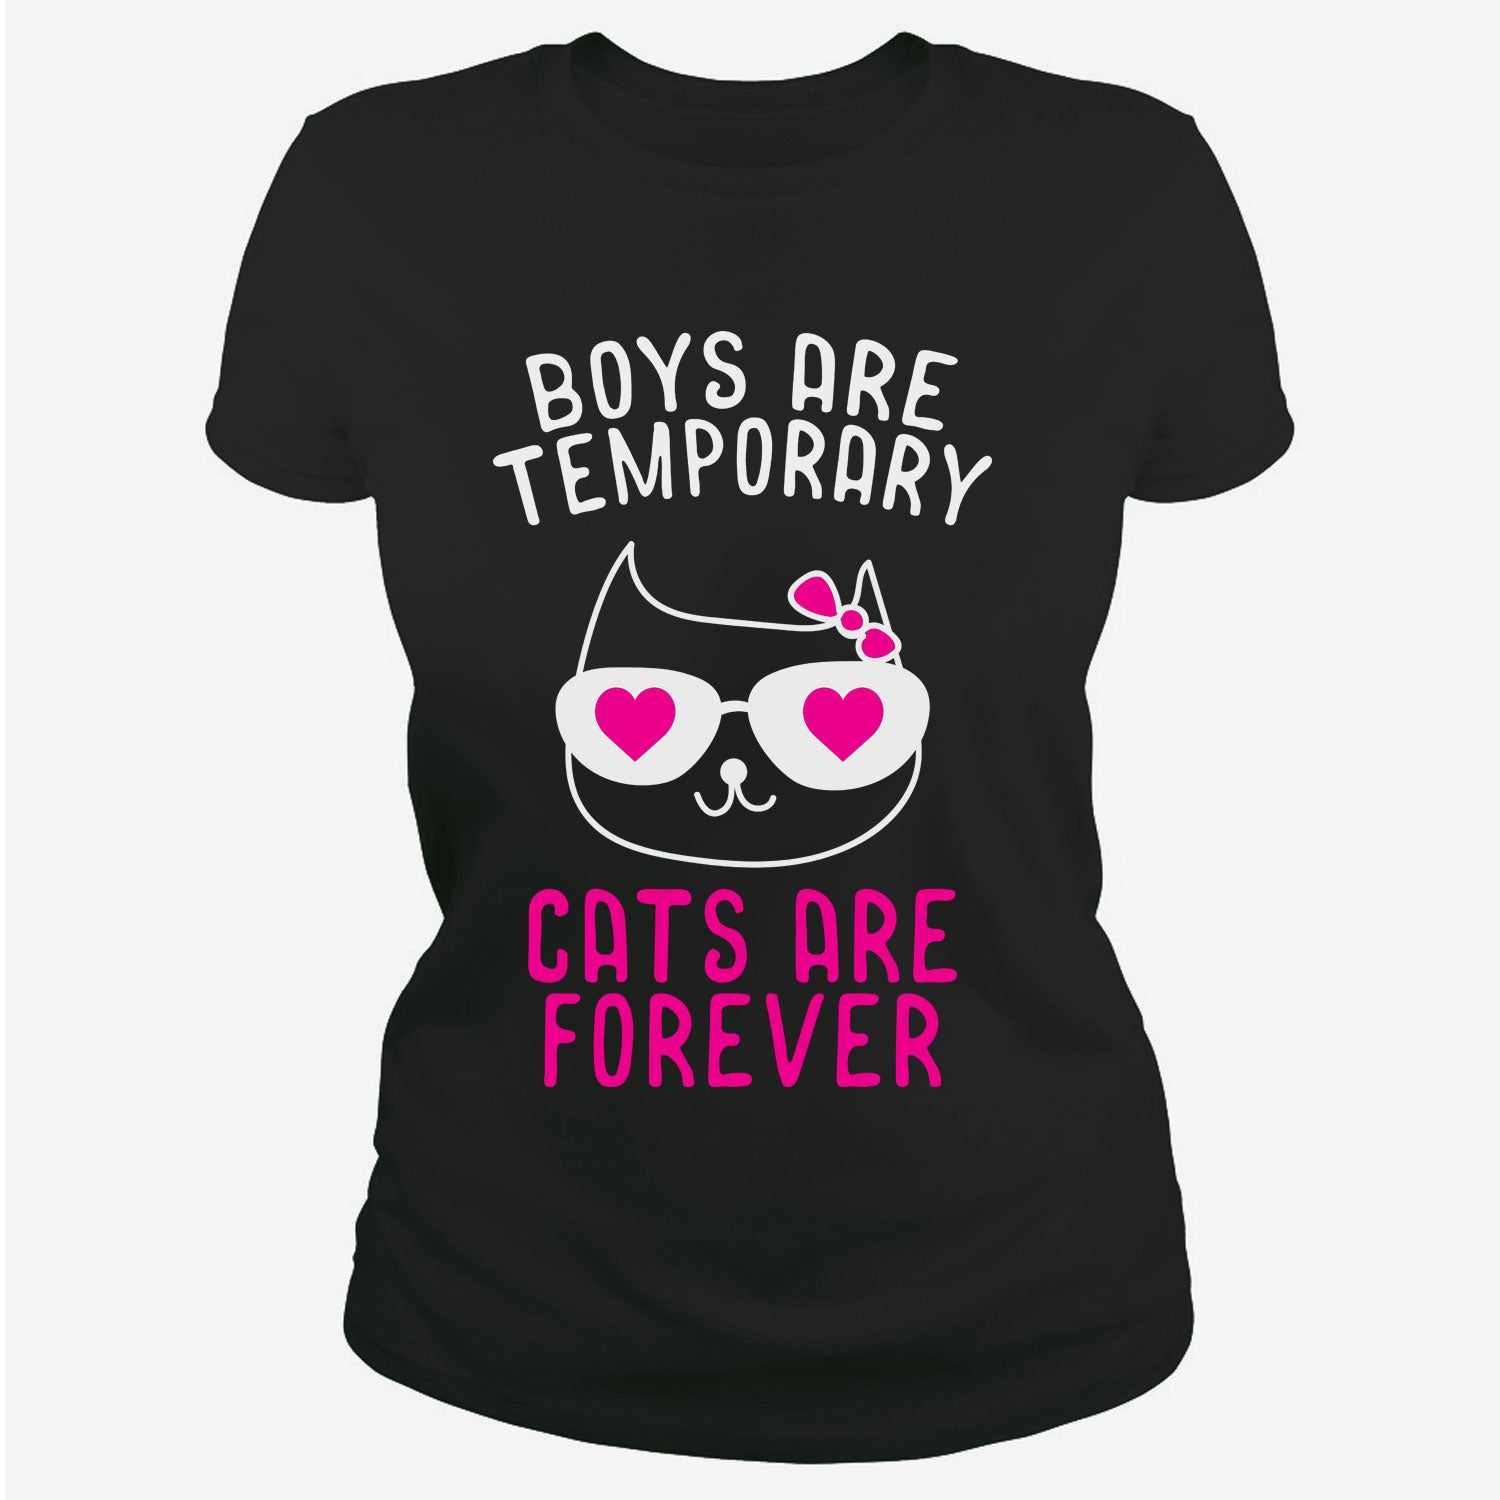 Boys are temporary cats are permanent